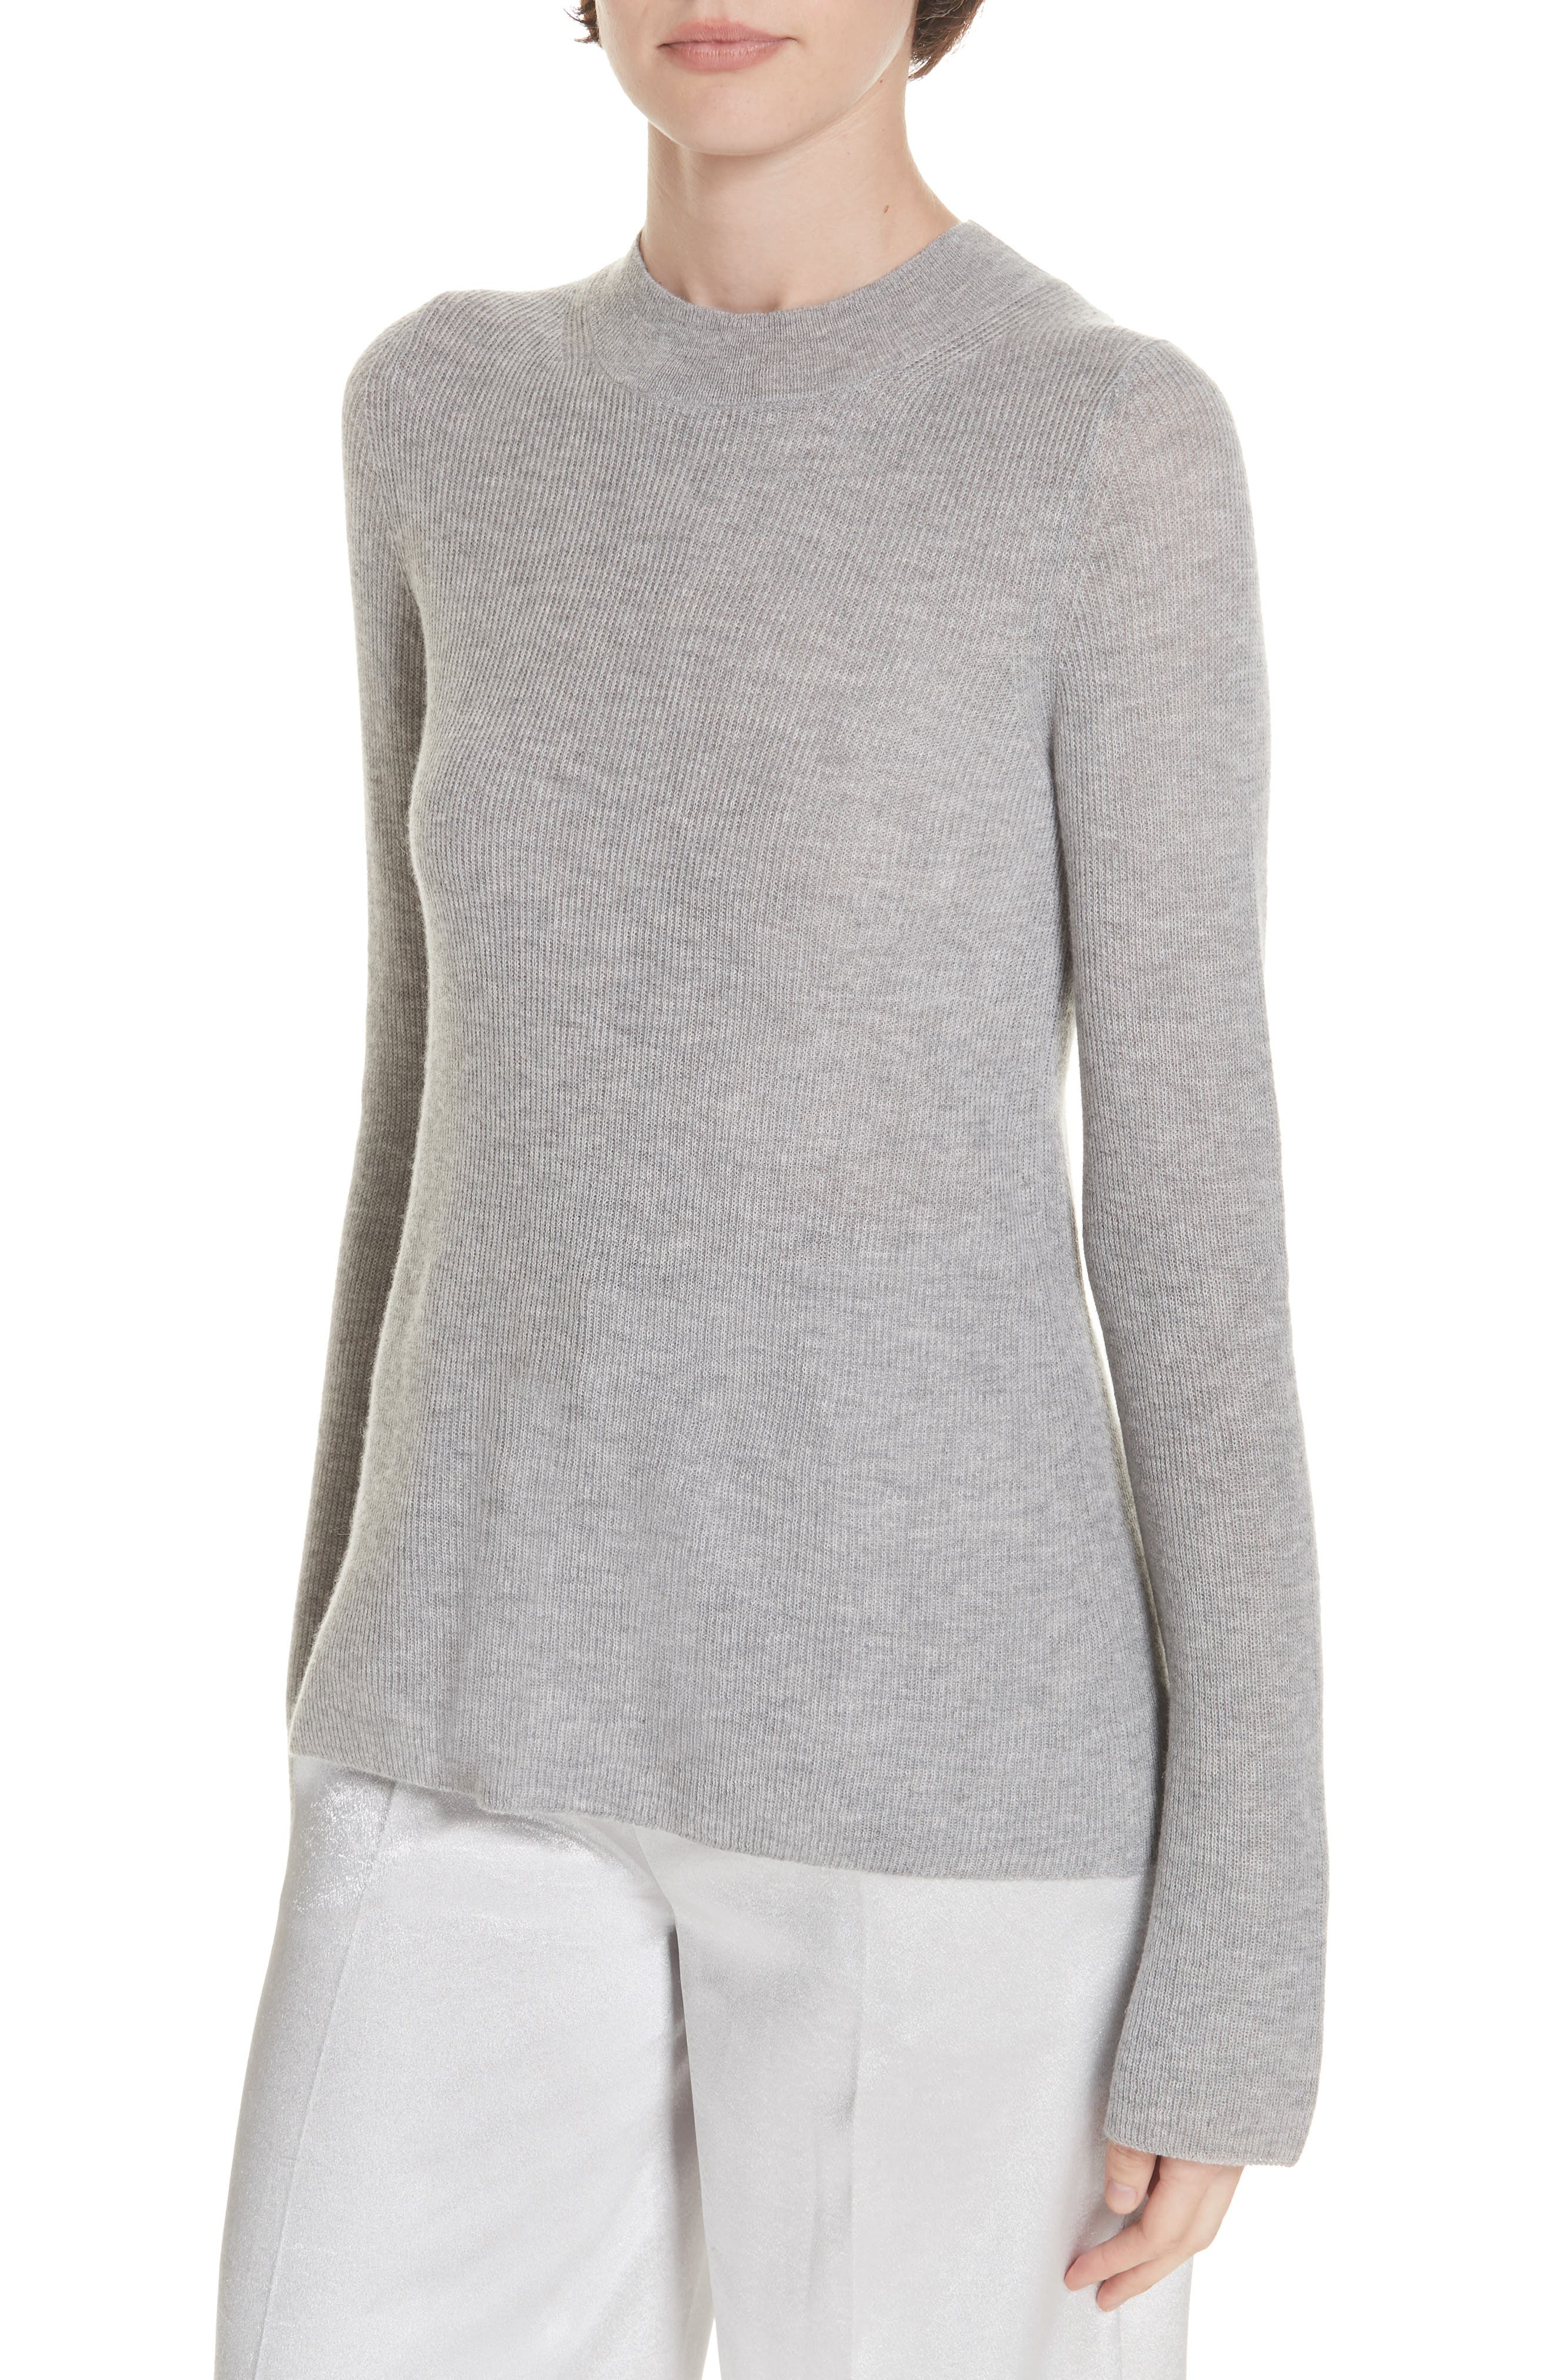 Ribbed Cashmere Sweater,                             Main thumbnail 1, color,                             060